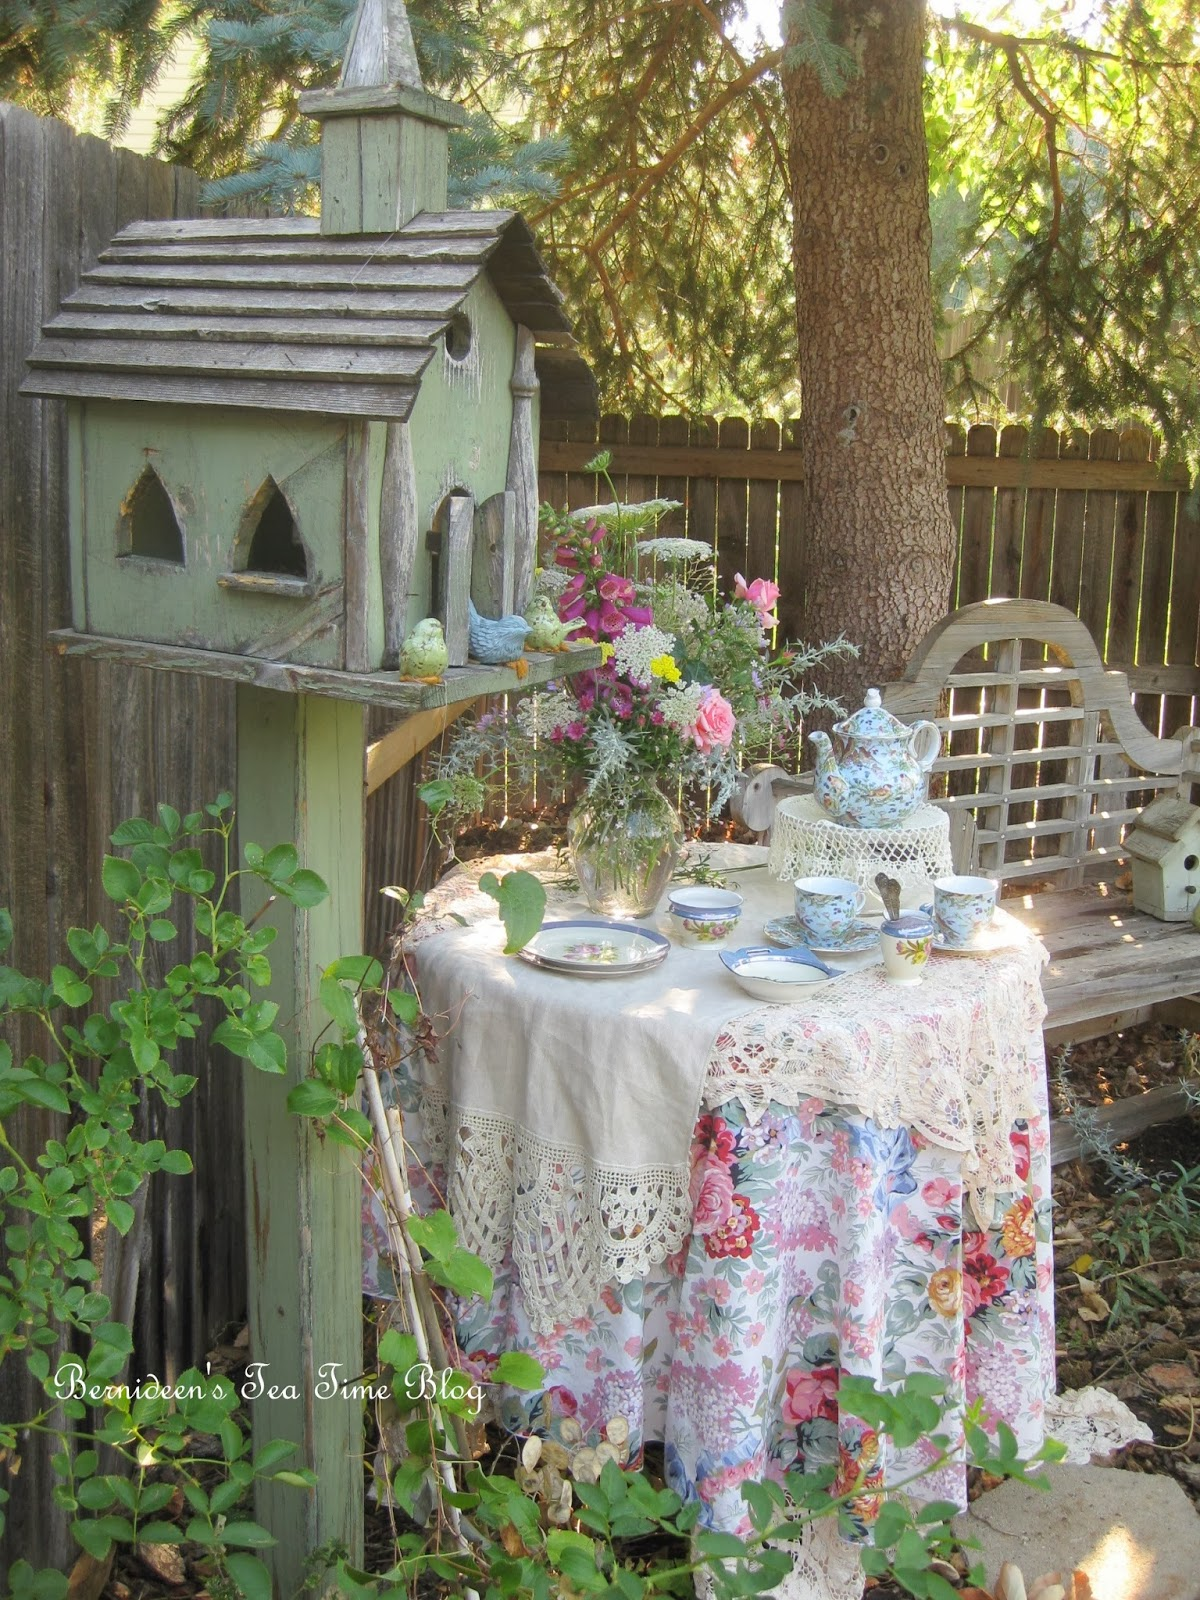 Bernideen's Tea Time Cottage And Garden TEA IN THE GARDEN WITH